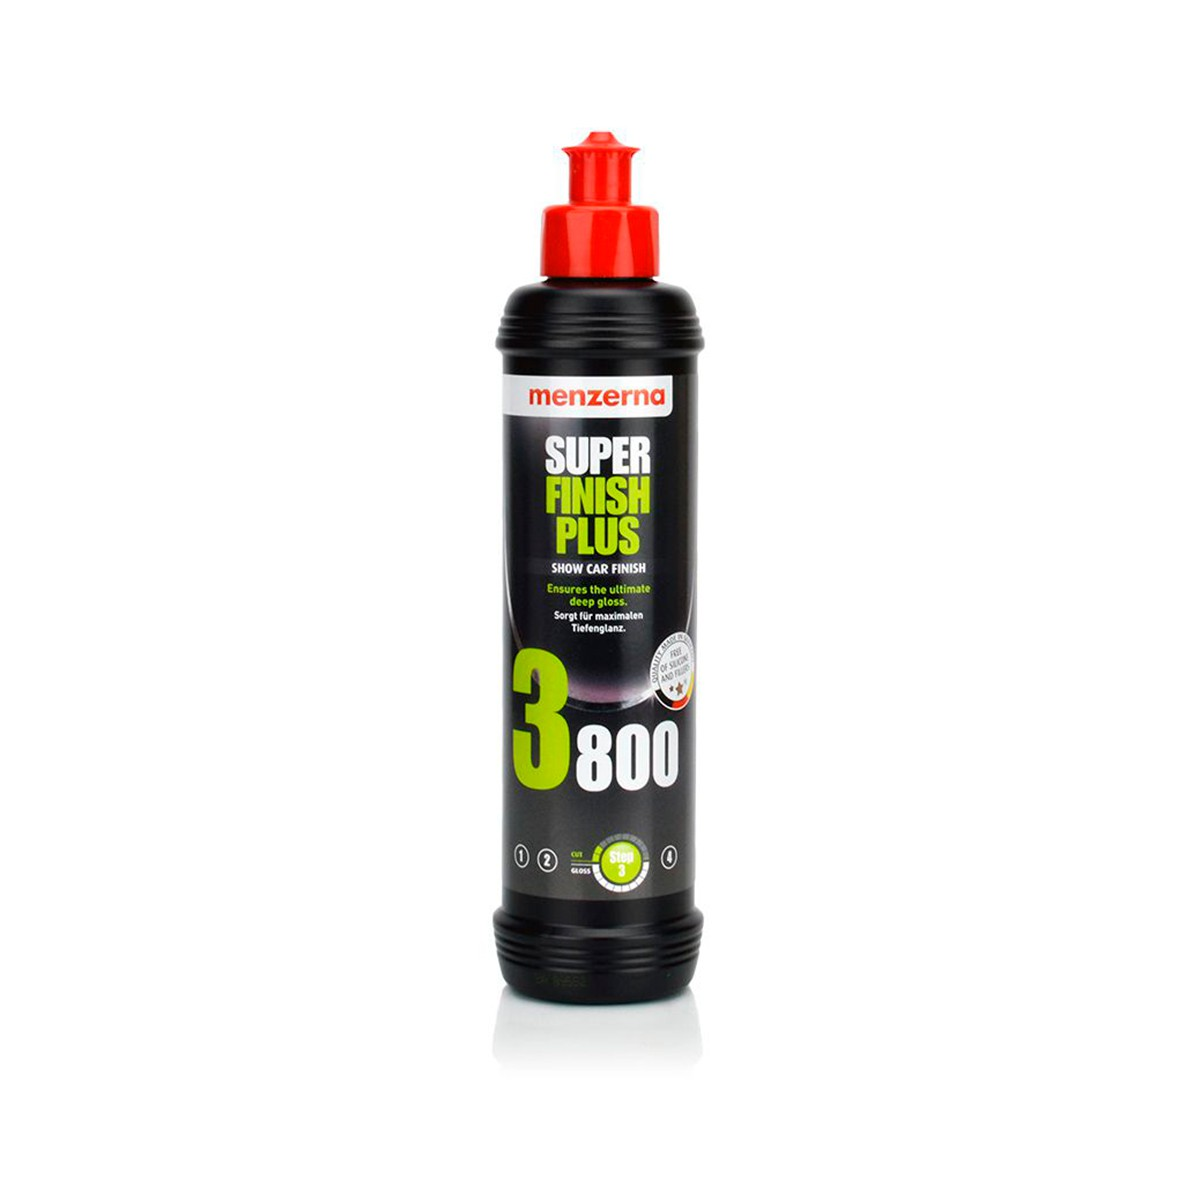 Super Finish Plus 3800 250ml - Menzerna